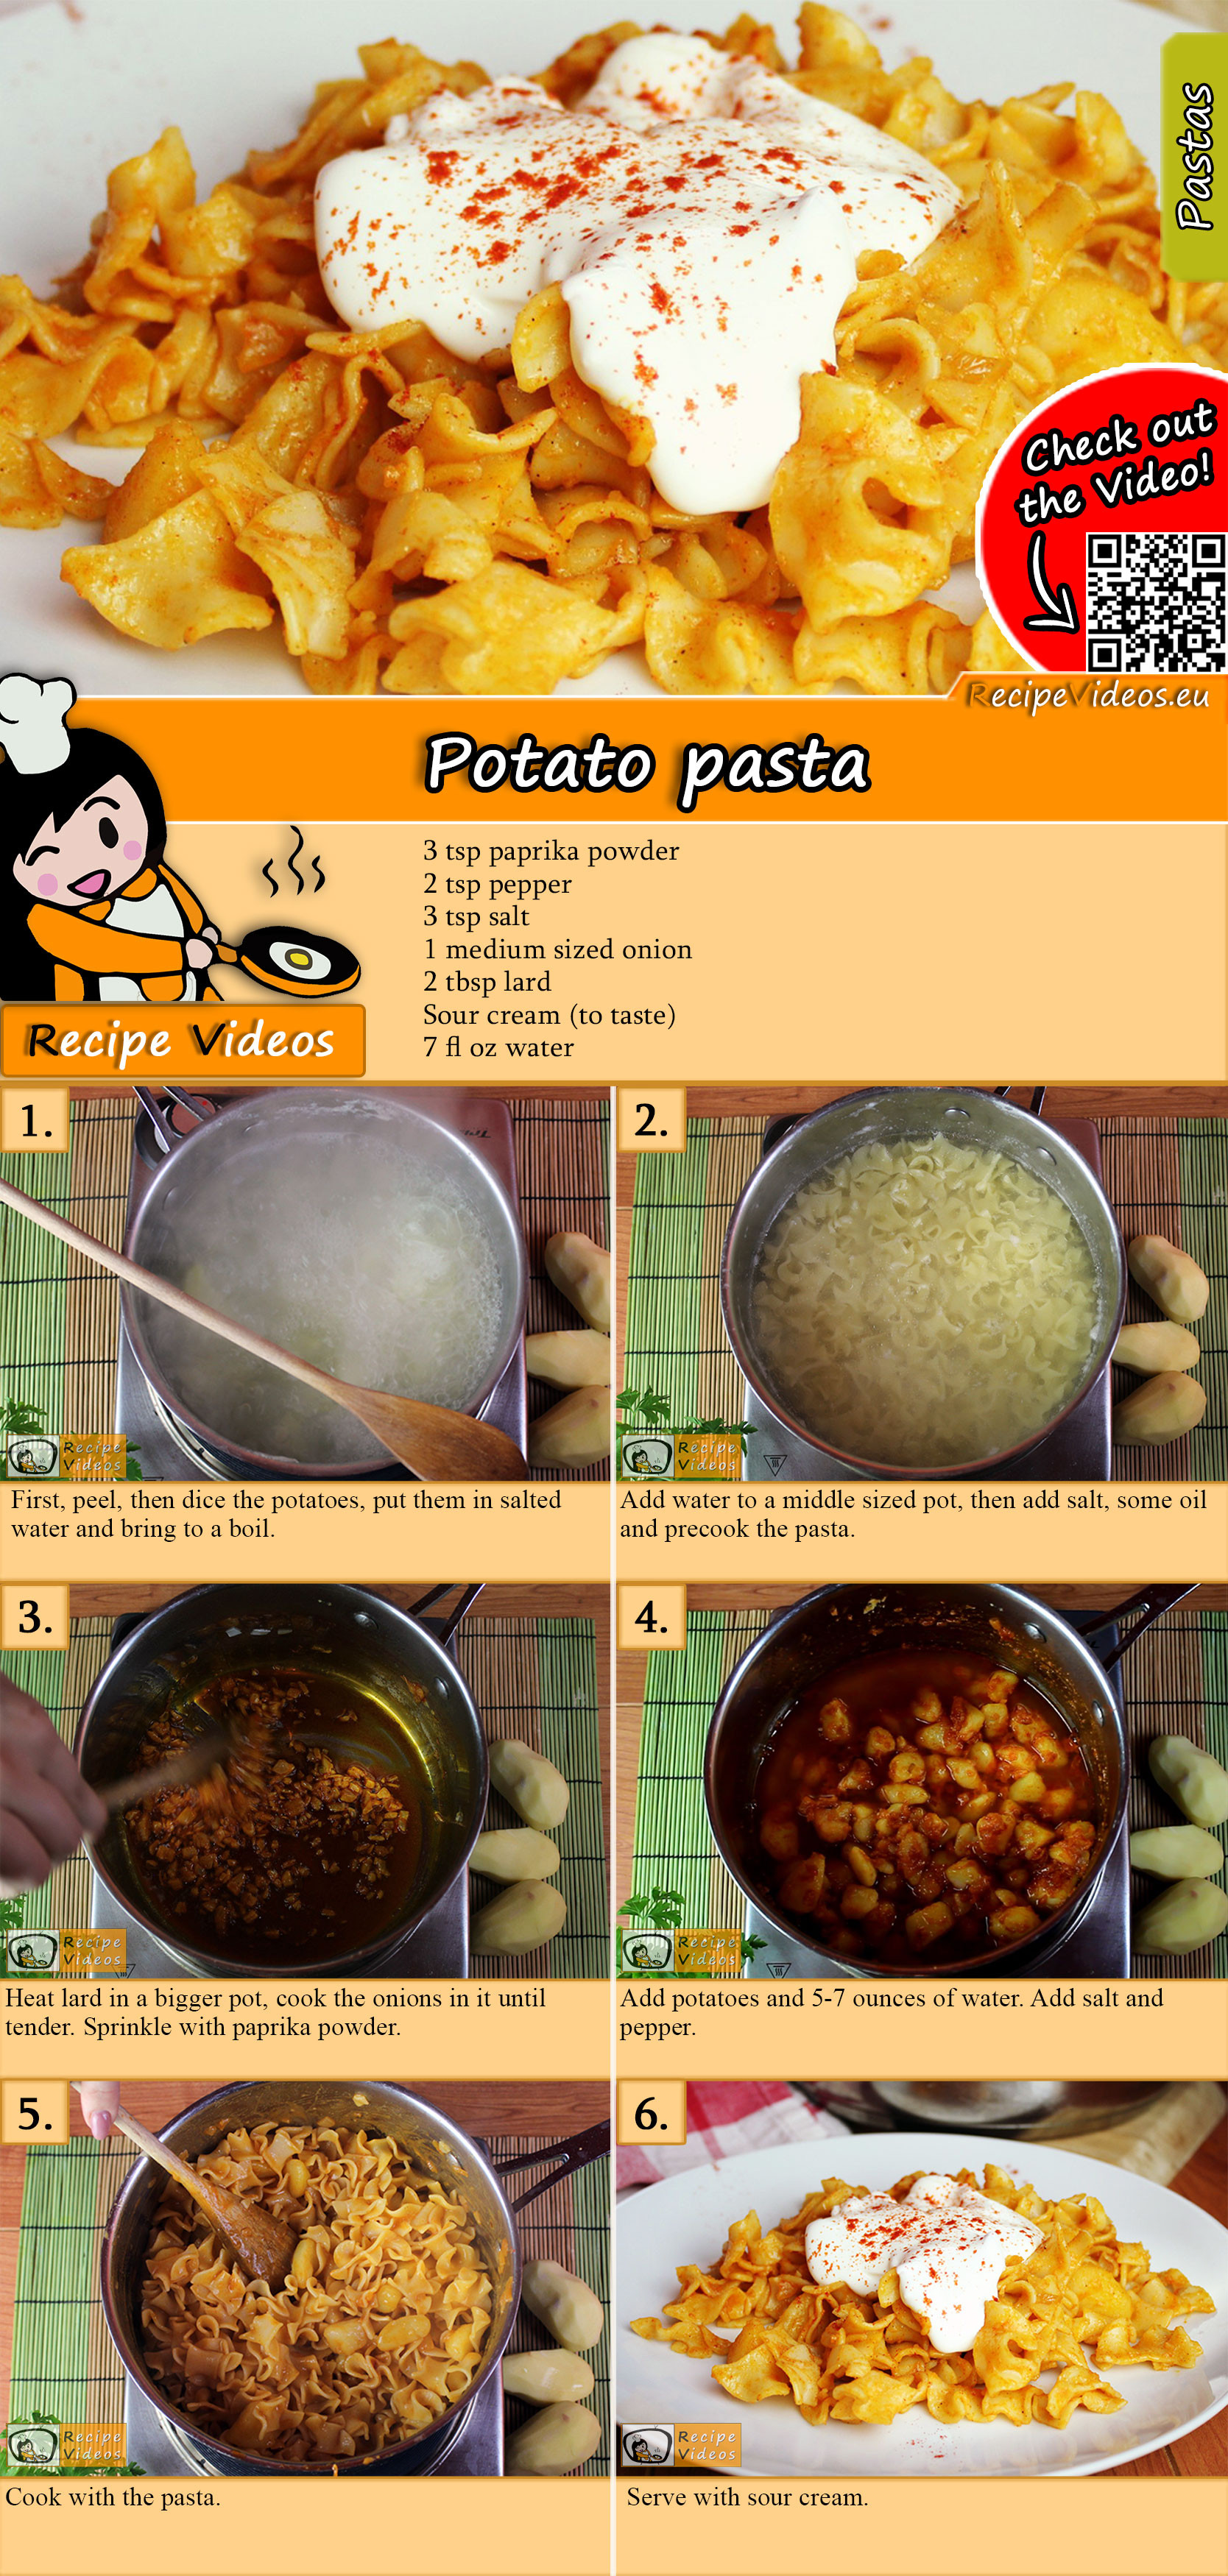 Potato pasta recipe with video